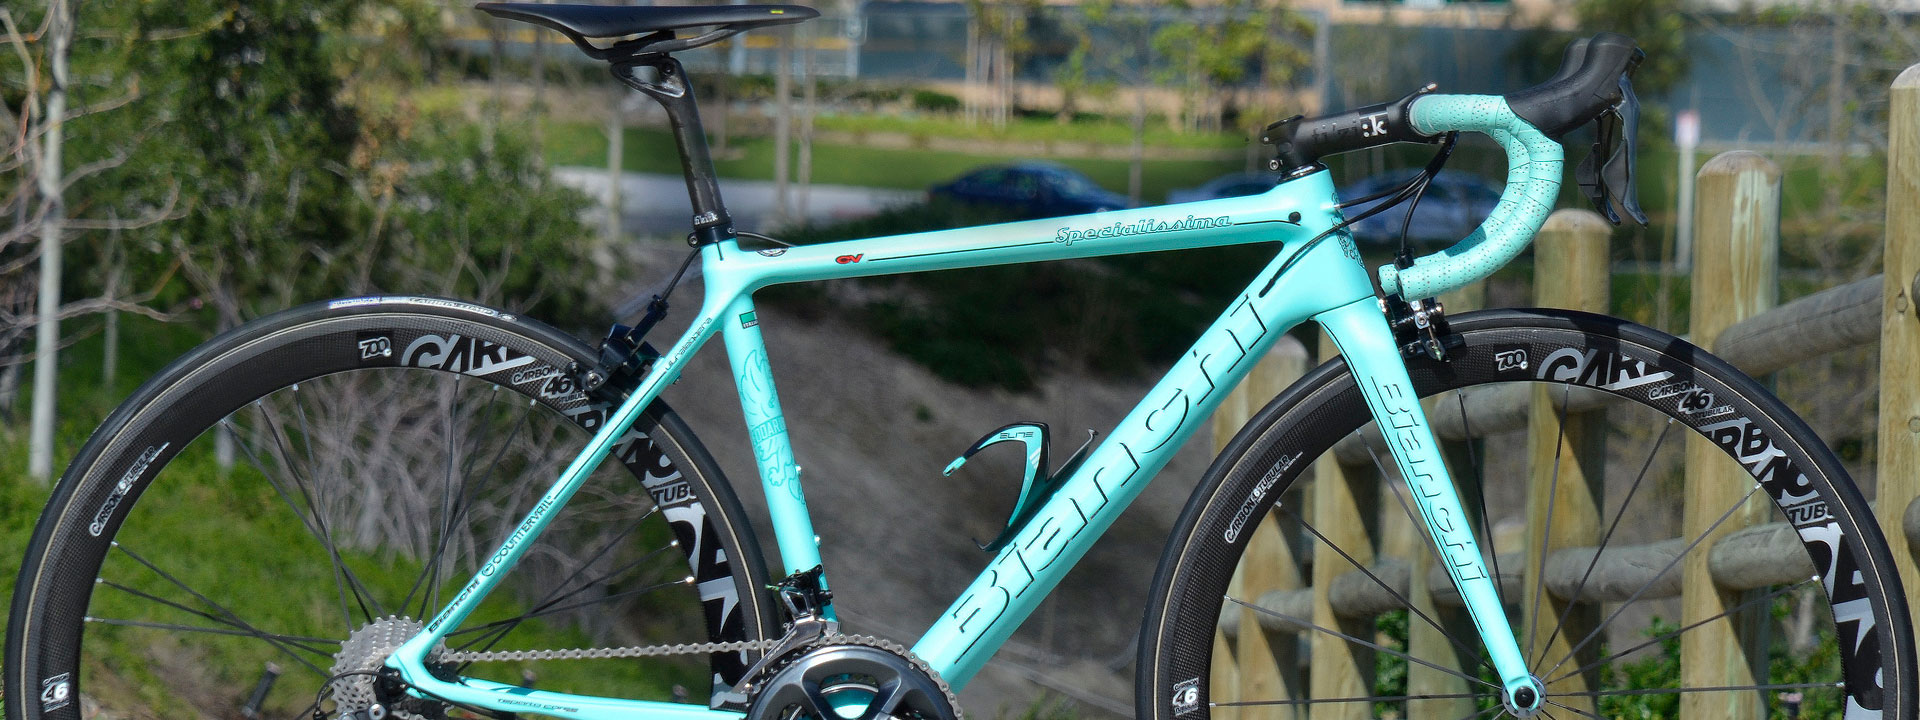 Bianchi Specialissima CV Shimano Dura Ace R9100 Complete Bike